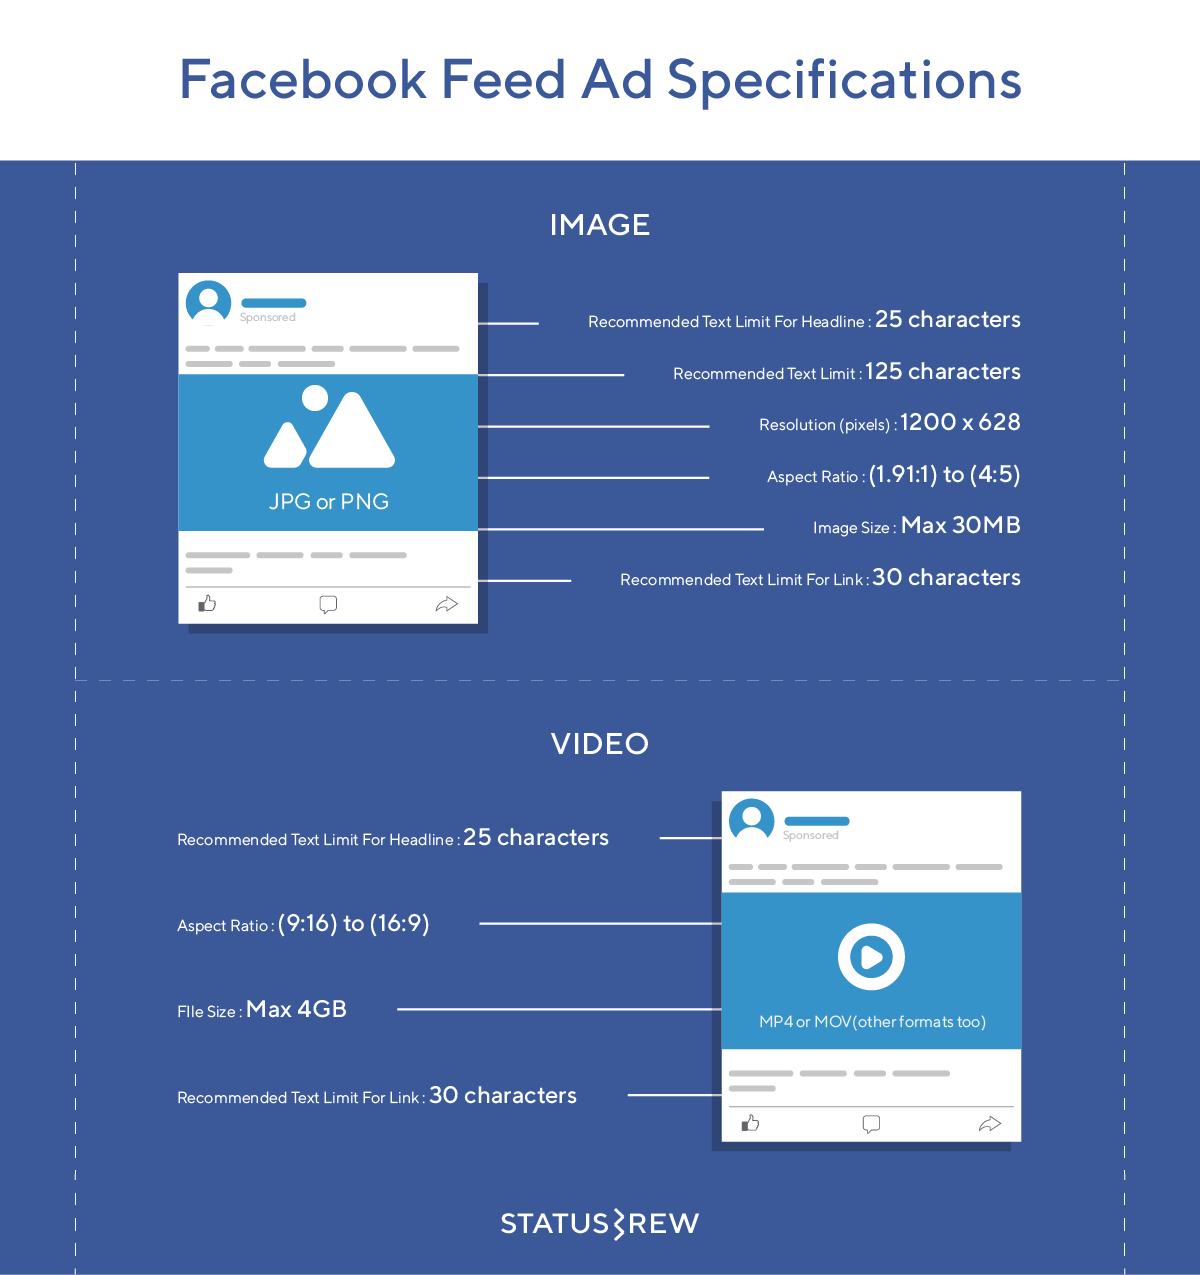 Facebook Feed Ad Specification